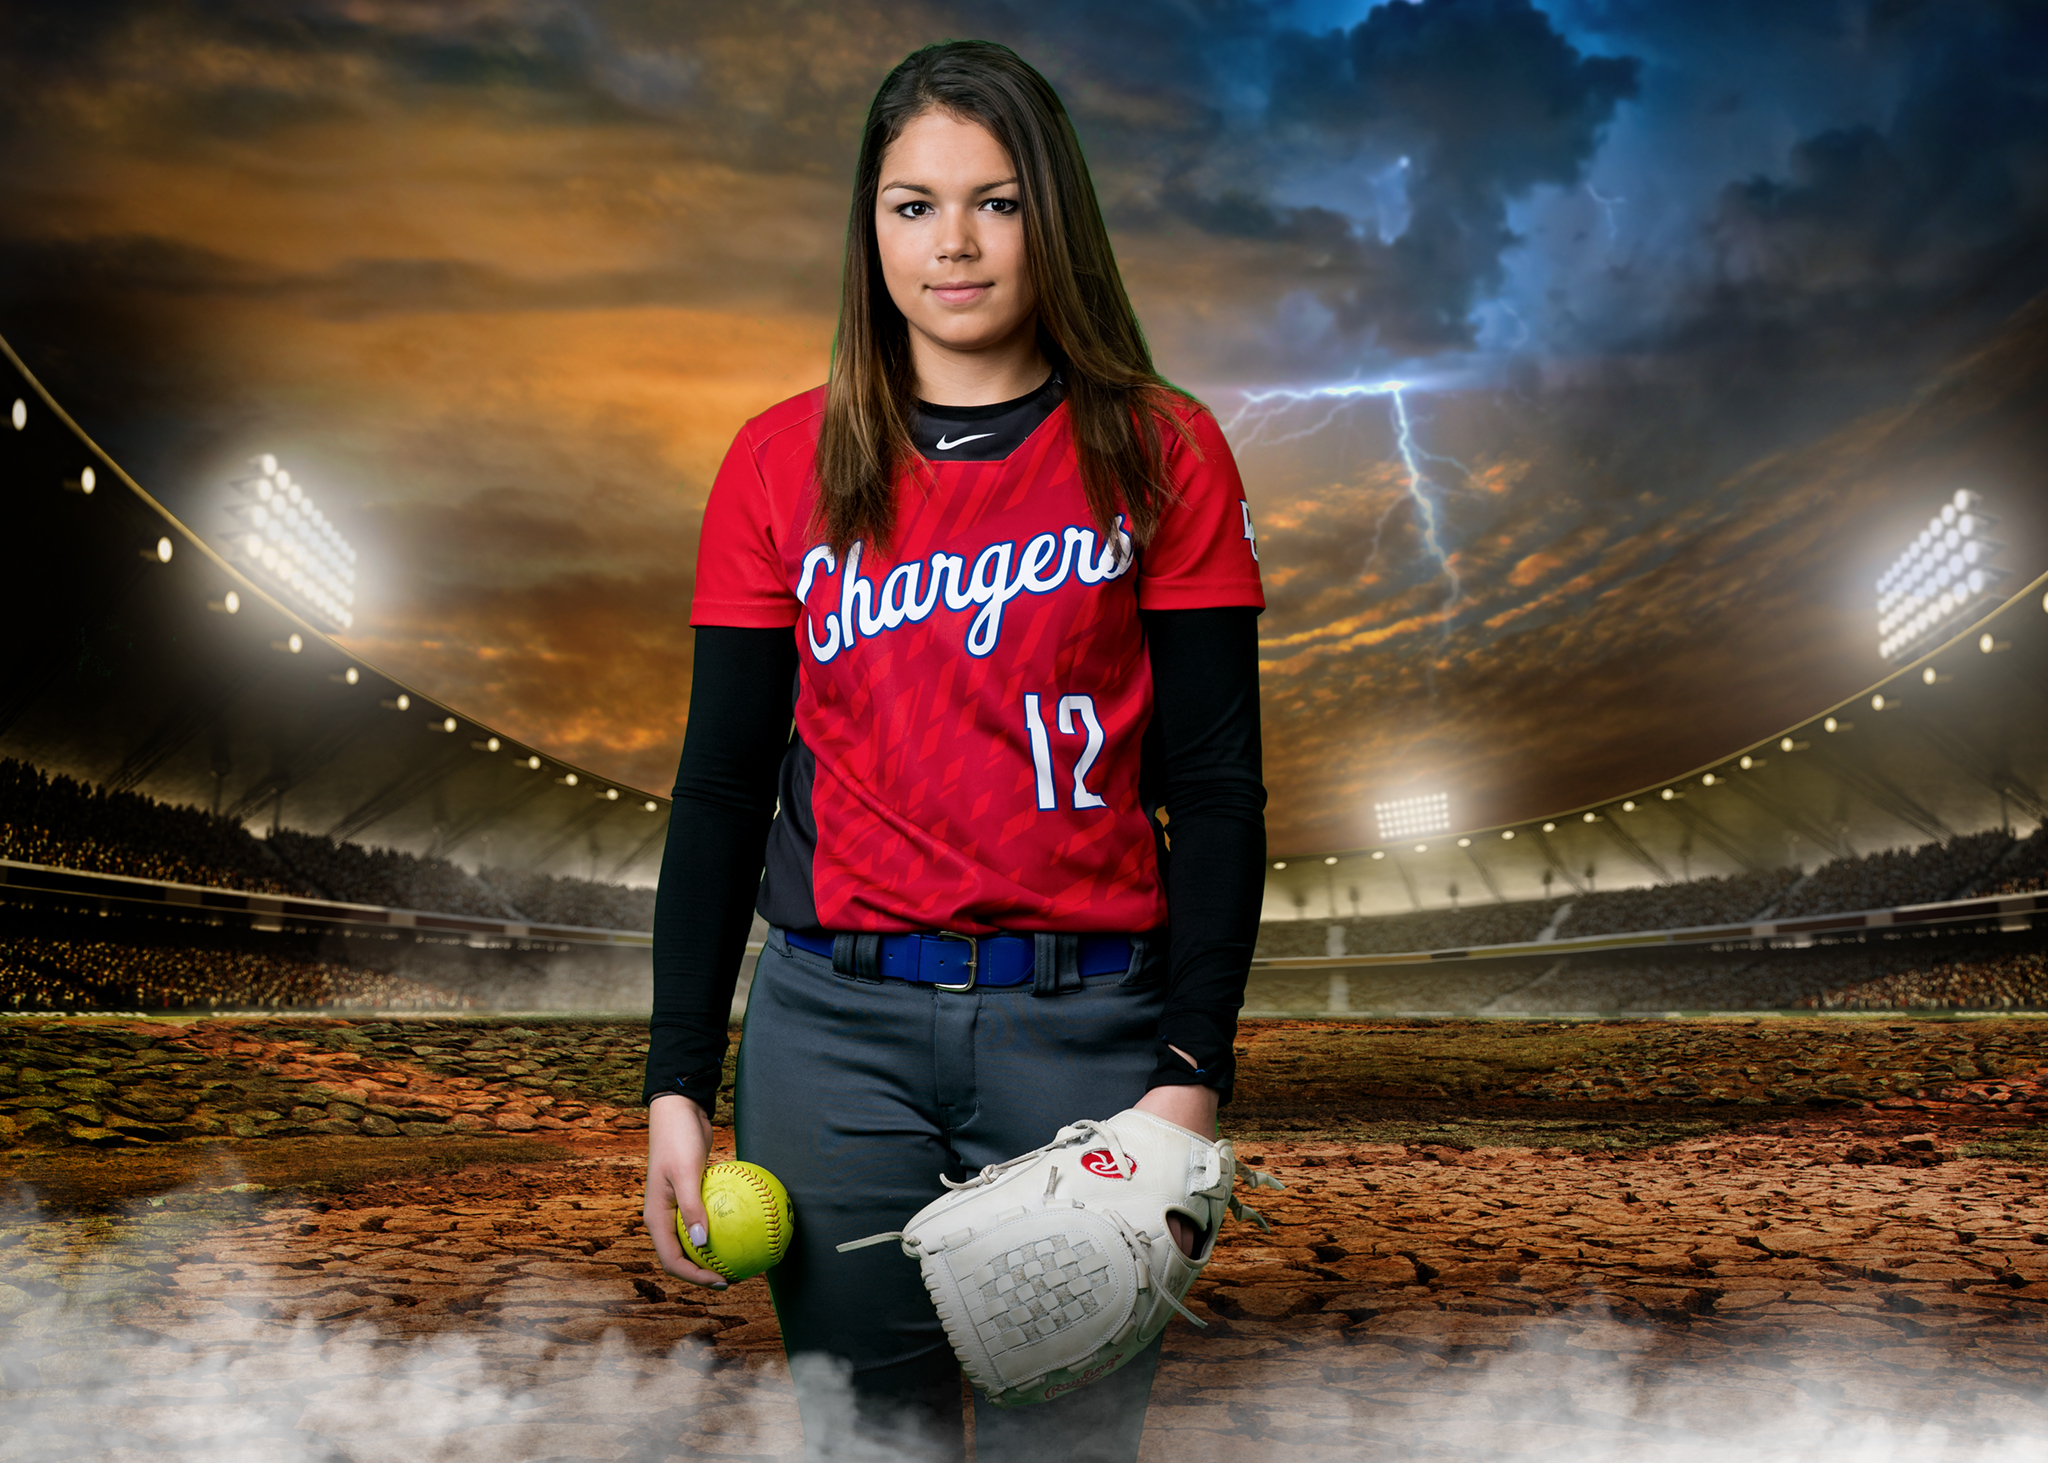 dchs softball player ruggles2 sm.jpg